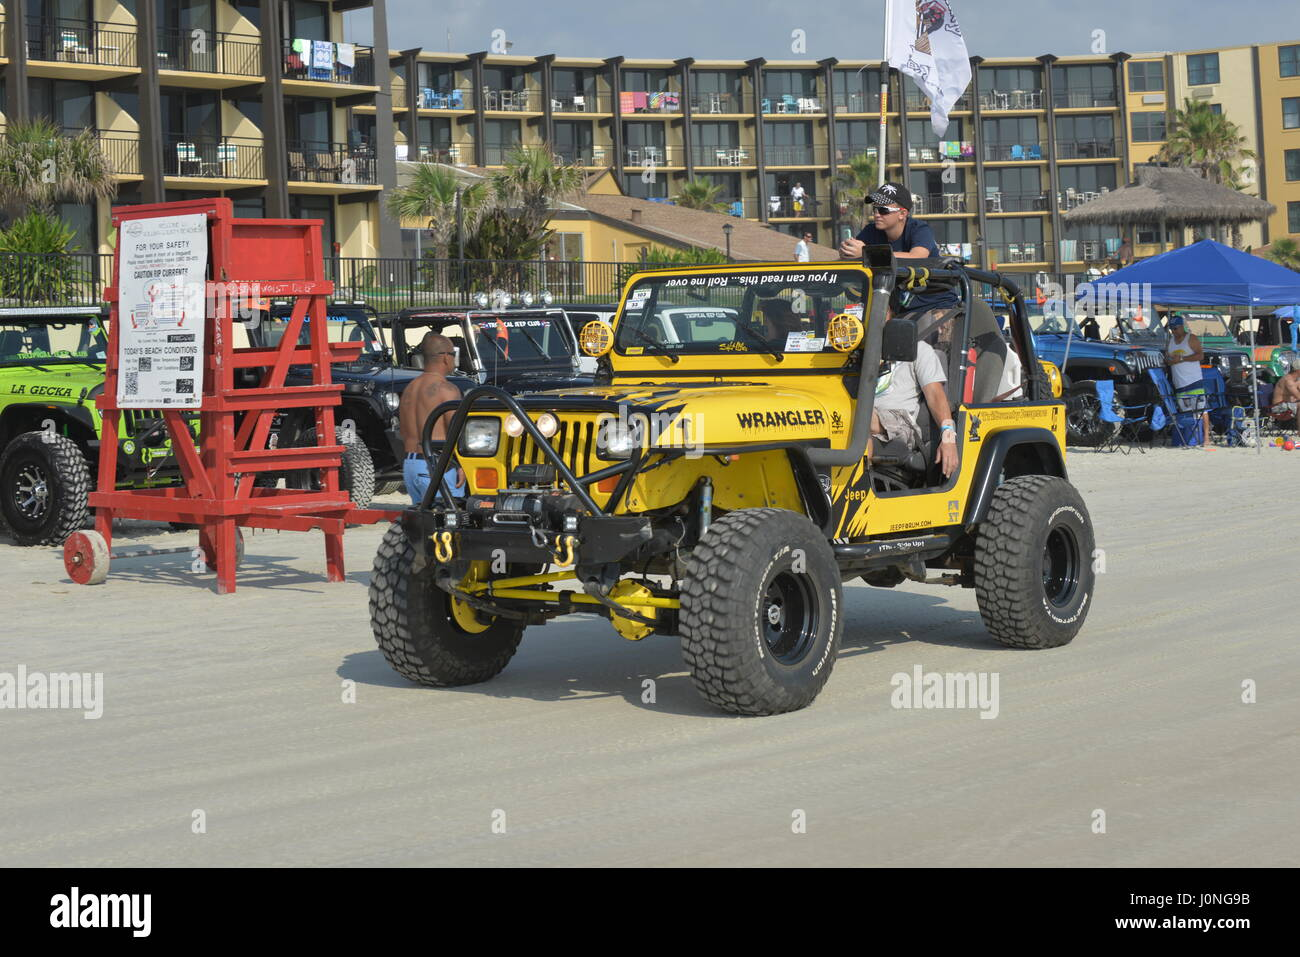 Jeep Week At Daytona Beach Thousands Of Jeeps On The Beach And On The Stock Photo Alamy